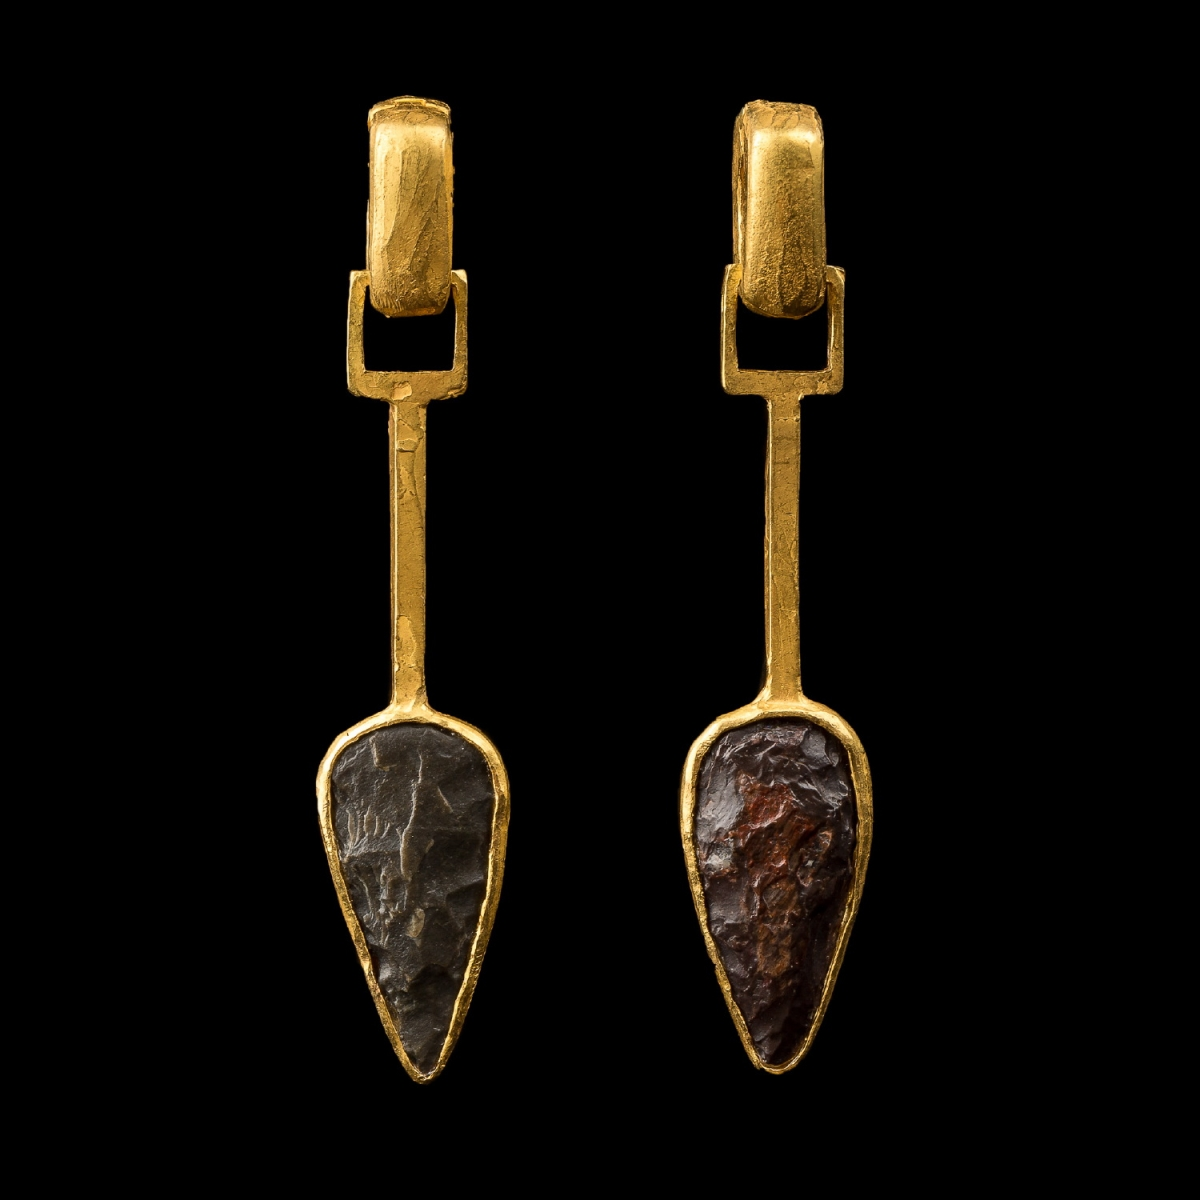 Photo of NEOLITHIC ARROWHEAD EARRINGS